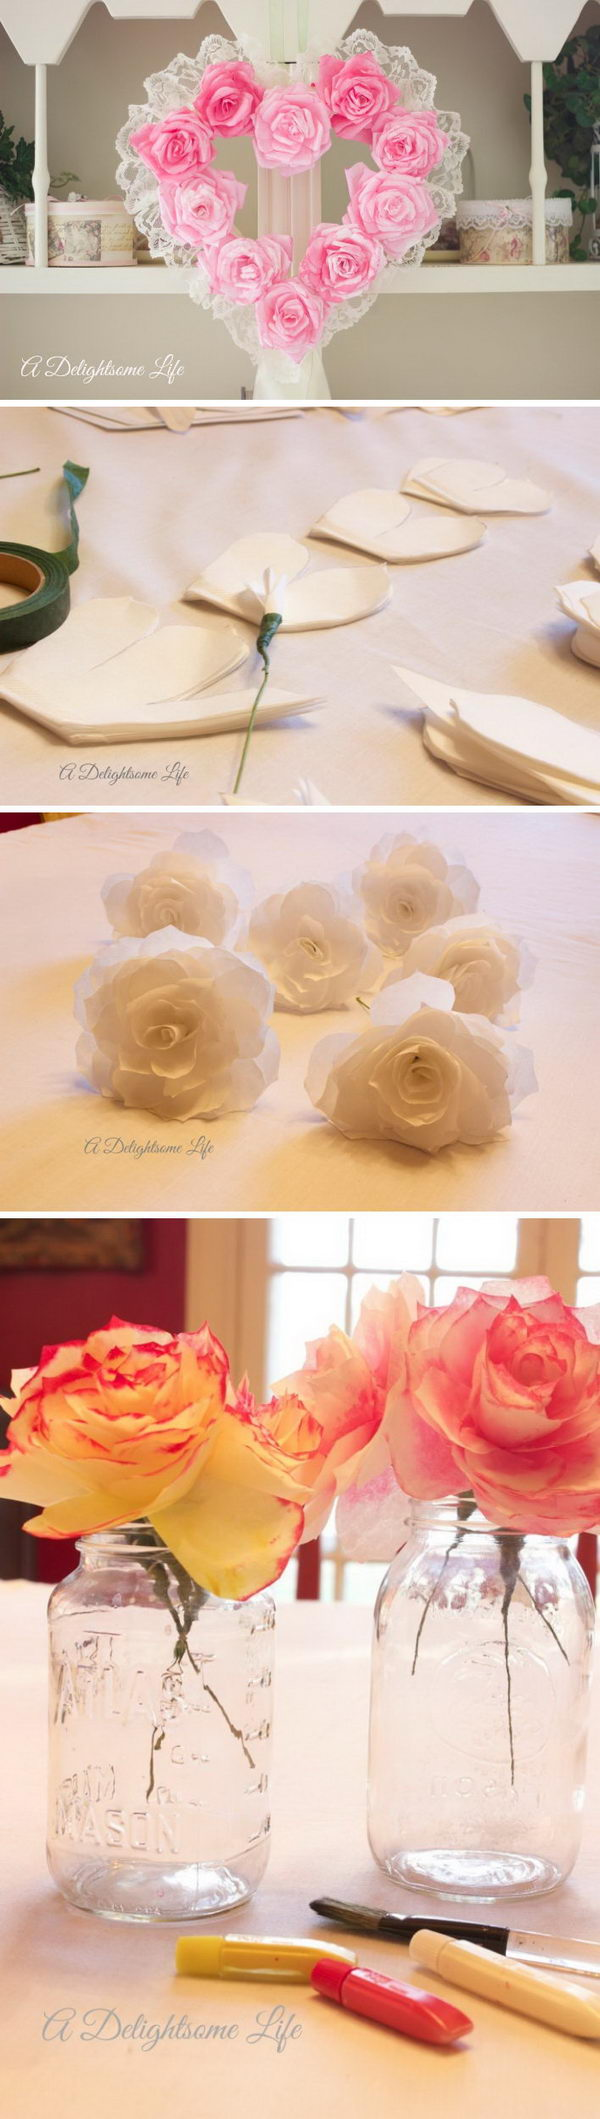 DIY Coffee Filter Rose Heart-Shaped Wreath.